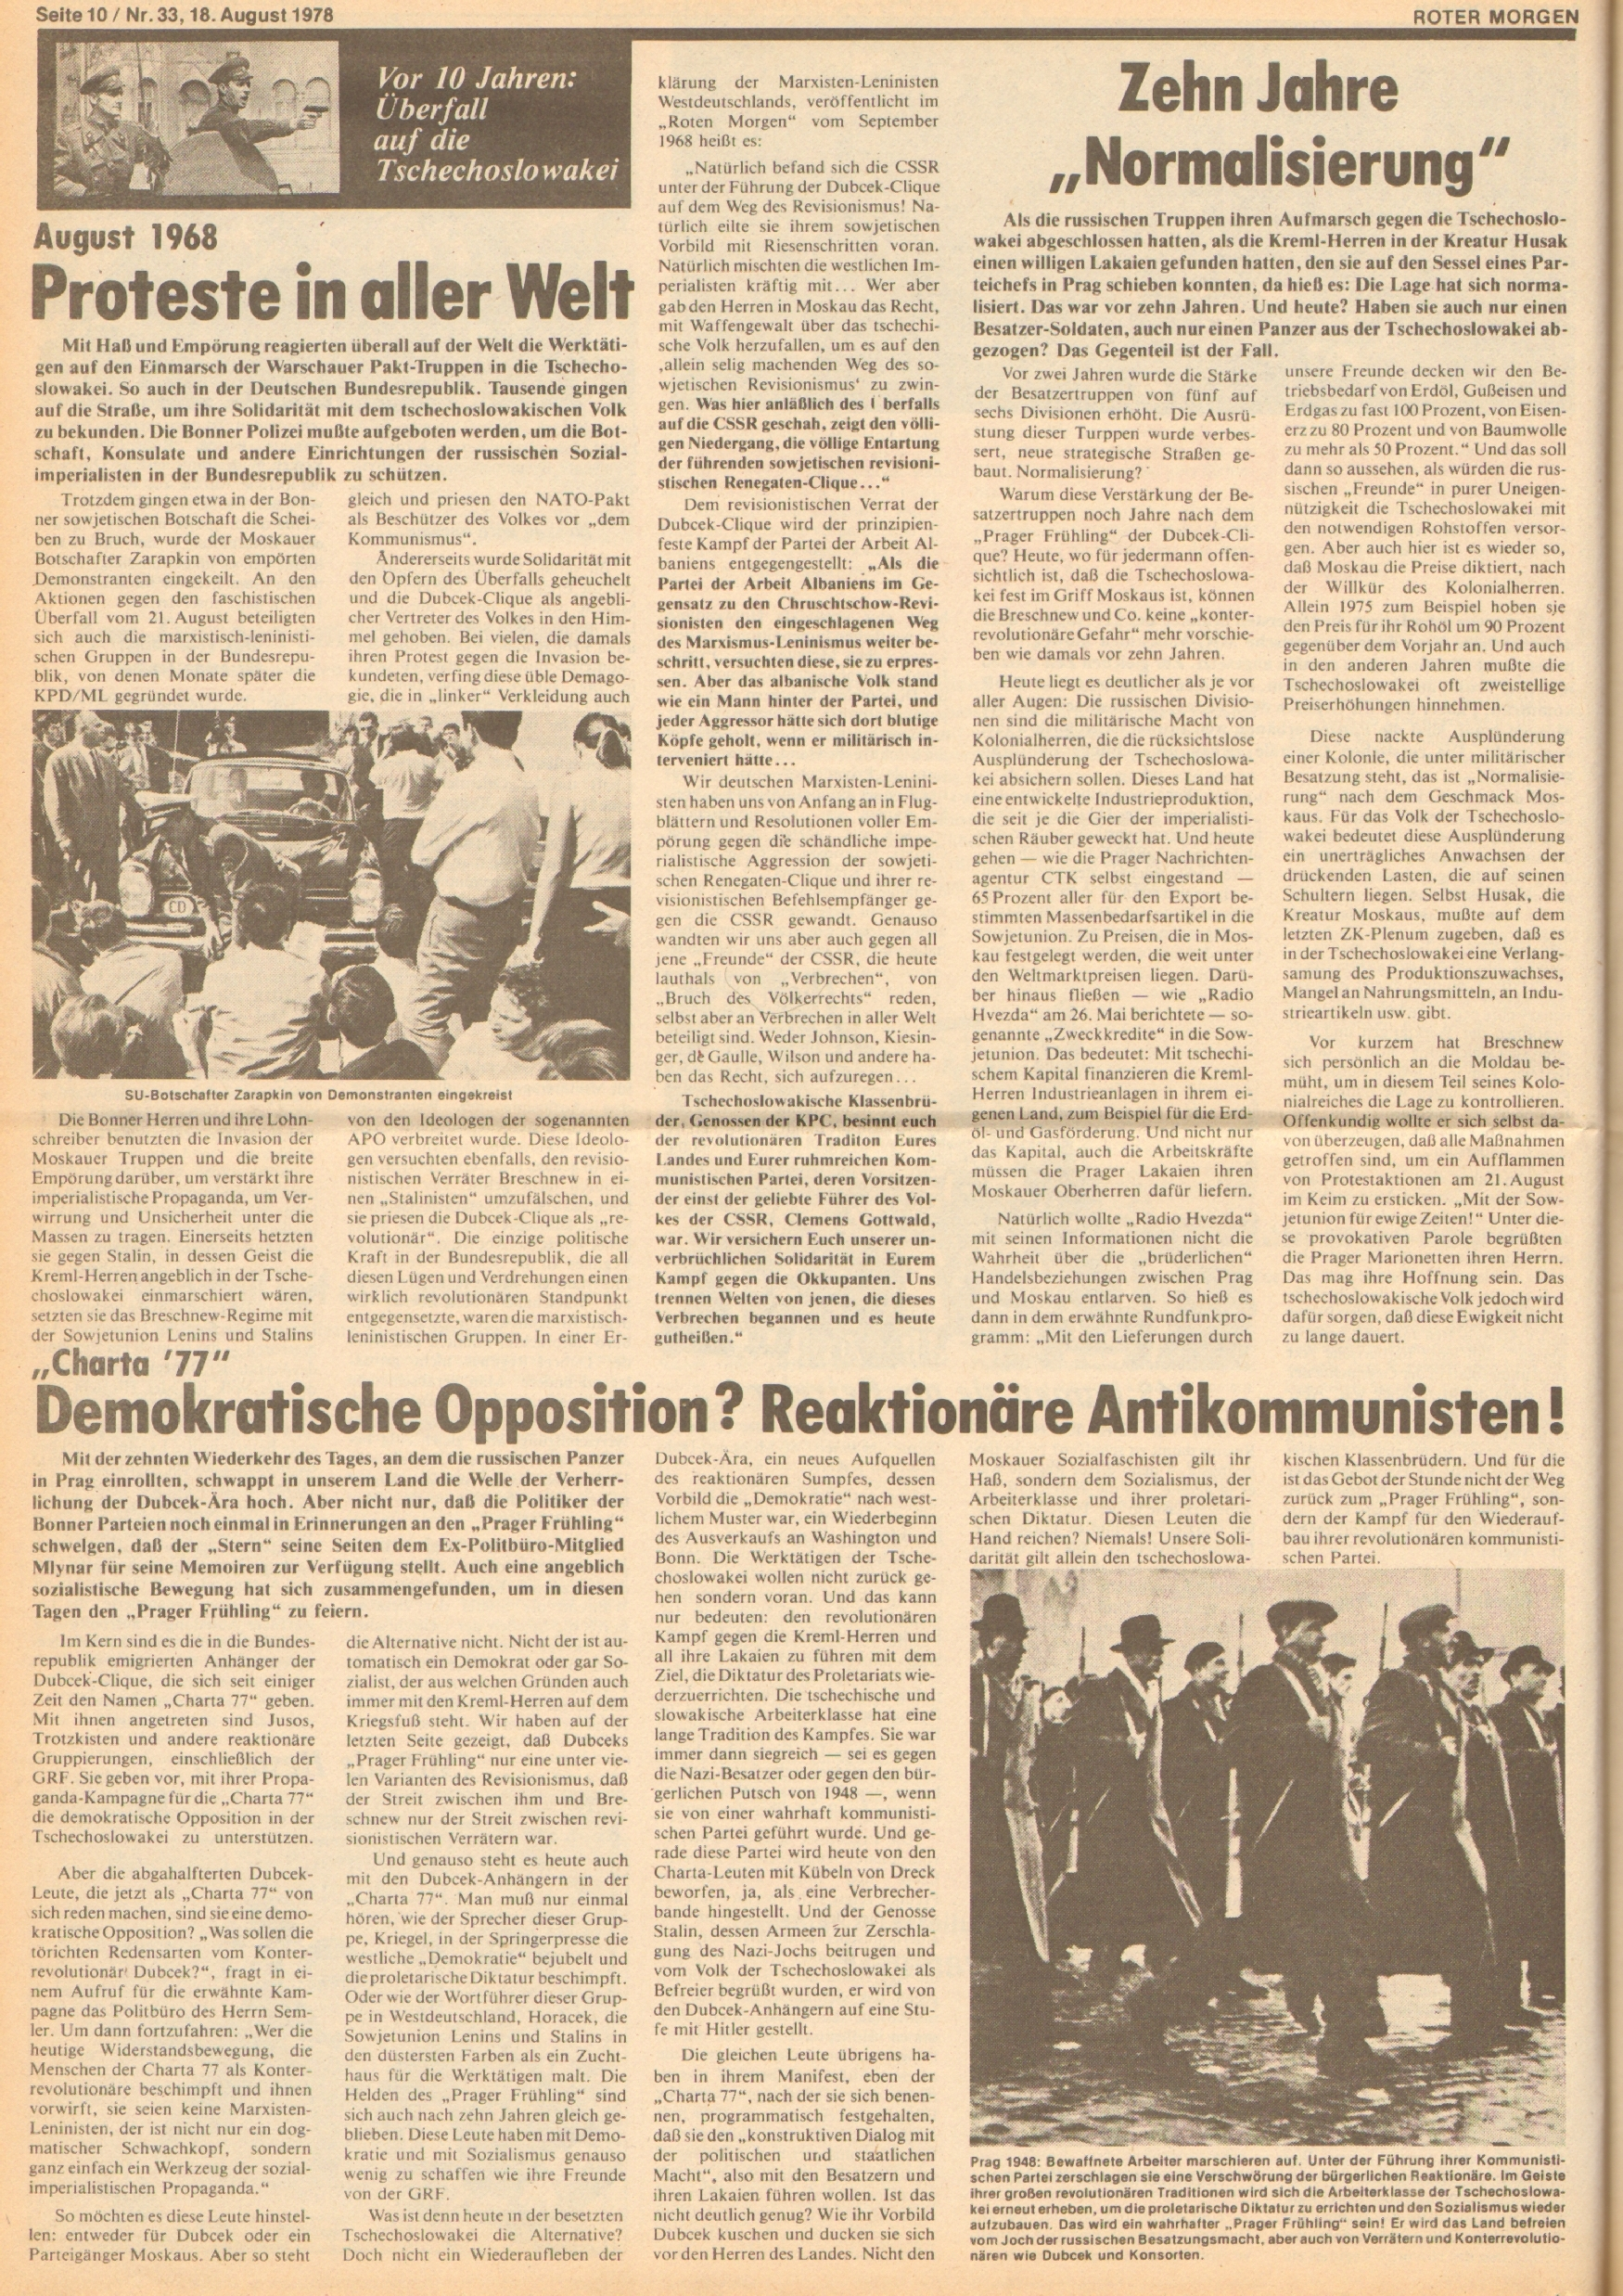 Roter Morgen, 12. Jg., 18. August 1978, Nr. 33, Seite 10